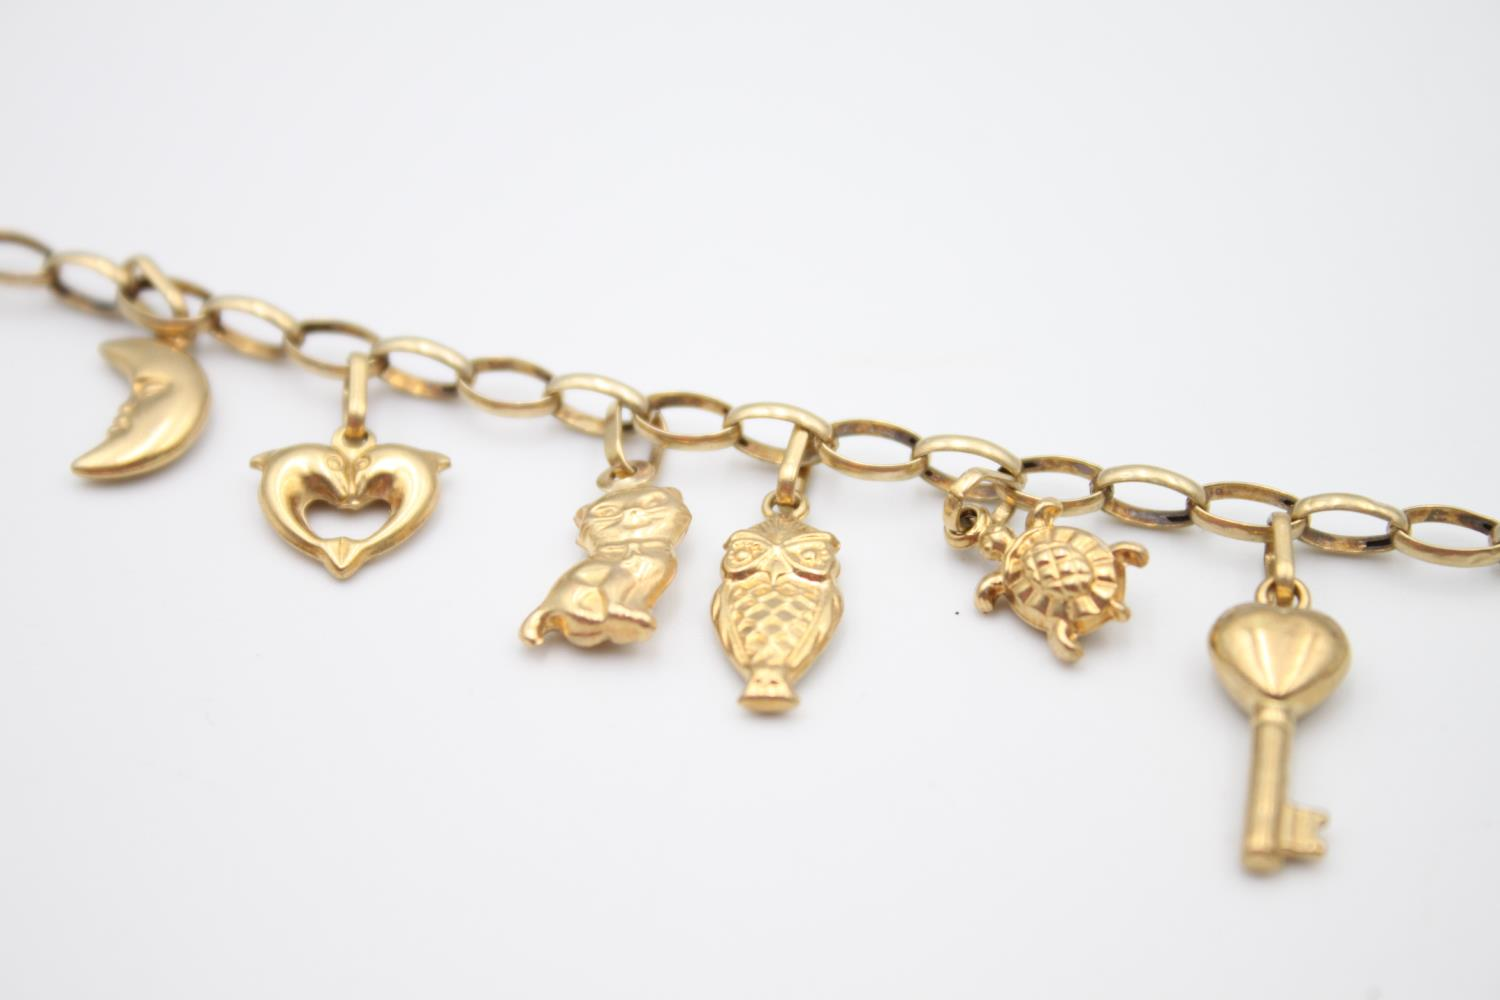 vintage 9ct gold rolo link charm bracelet with a variety of charms 5.7g - Image 3 of 7